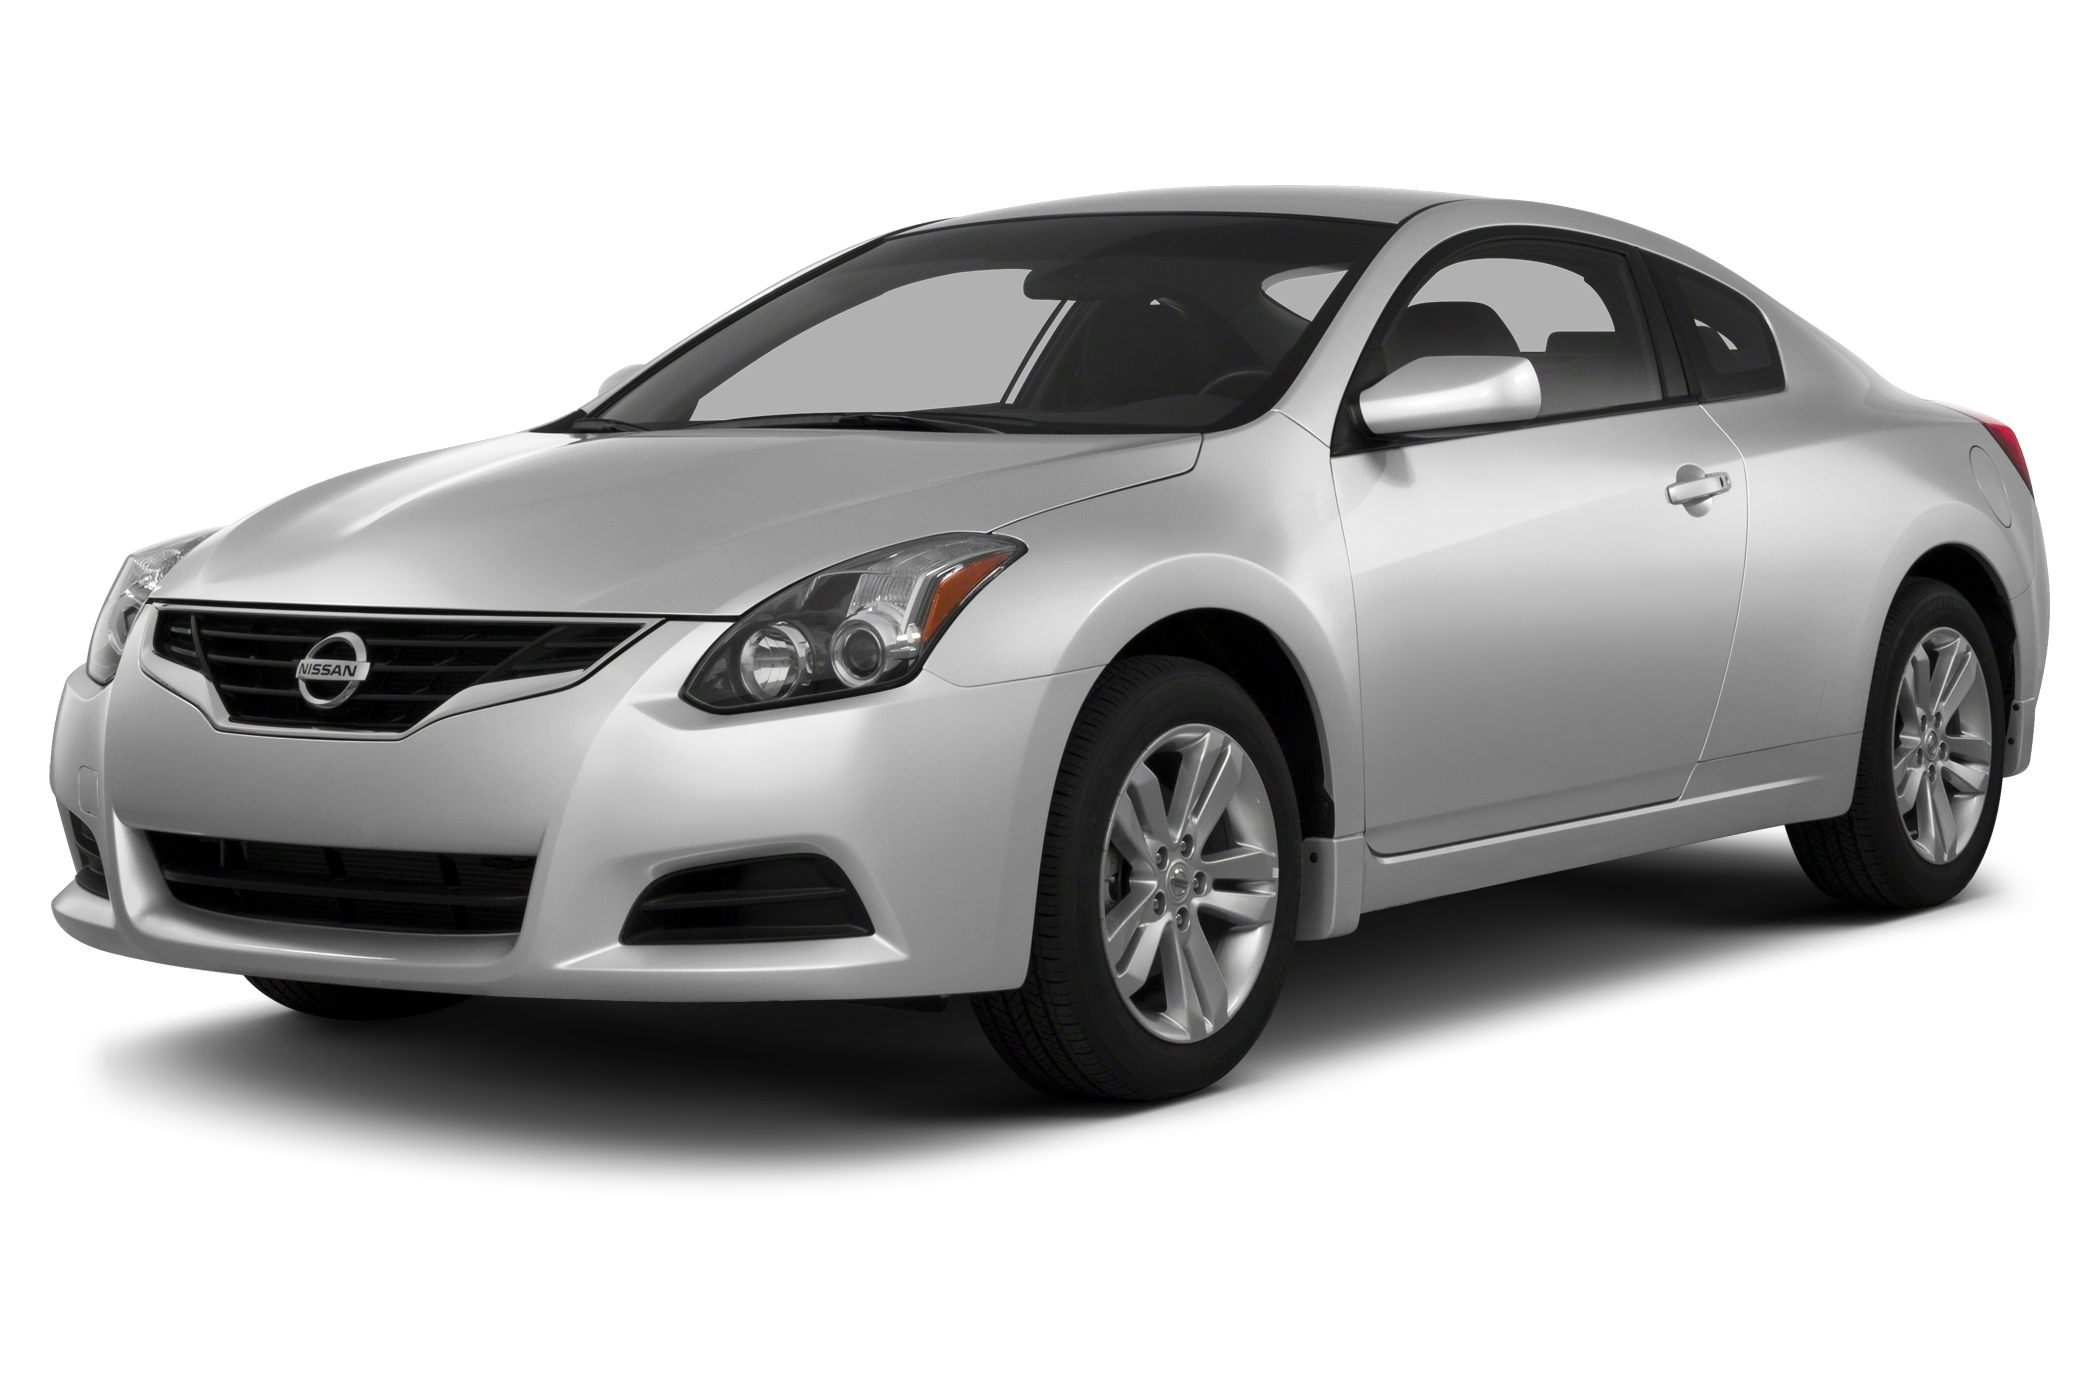 17 The 2013 Nissan Altima Coupe Prices